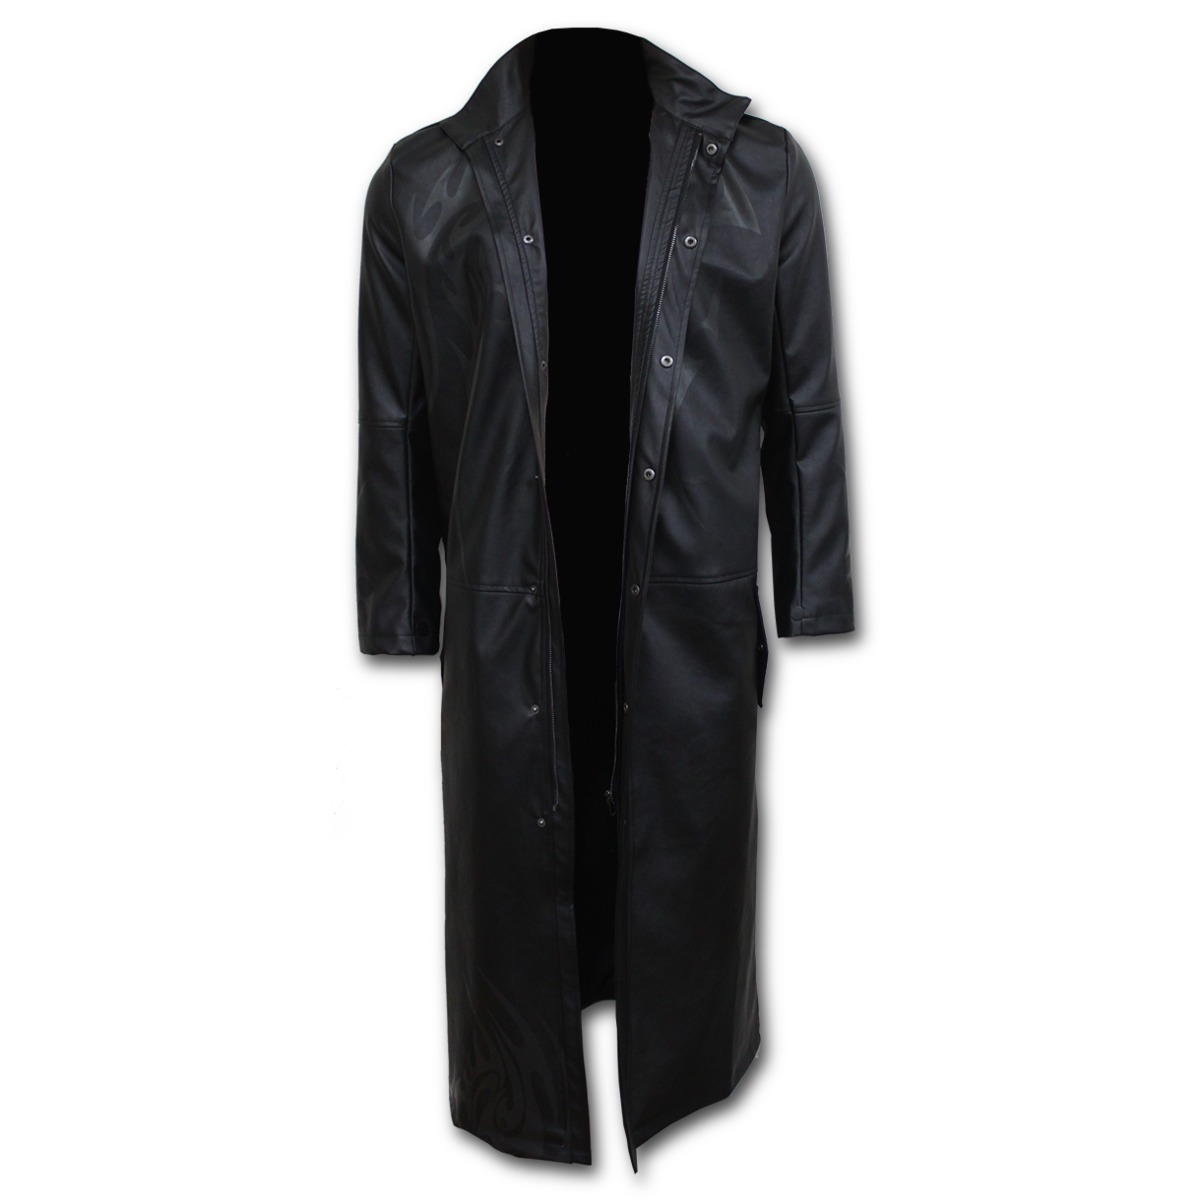 rebelsmarket_gothic_trench_coat_pu_leather_with_full_zip_jackets_4.jpg